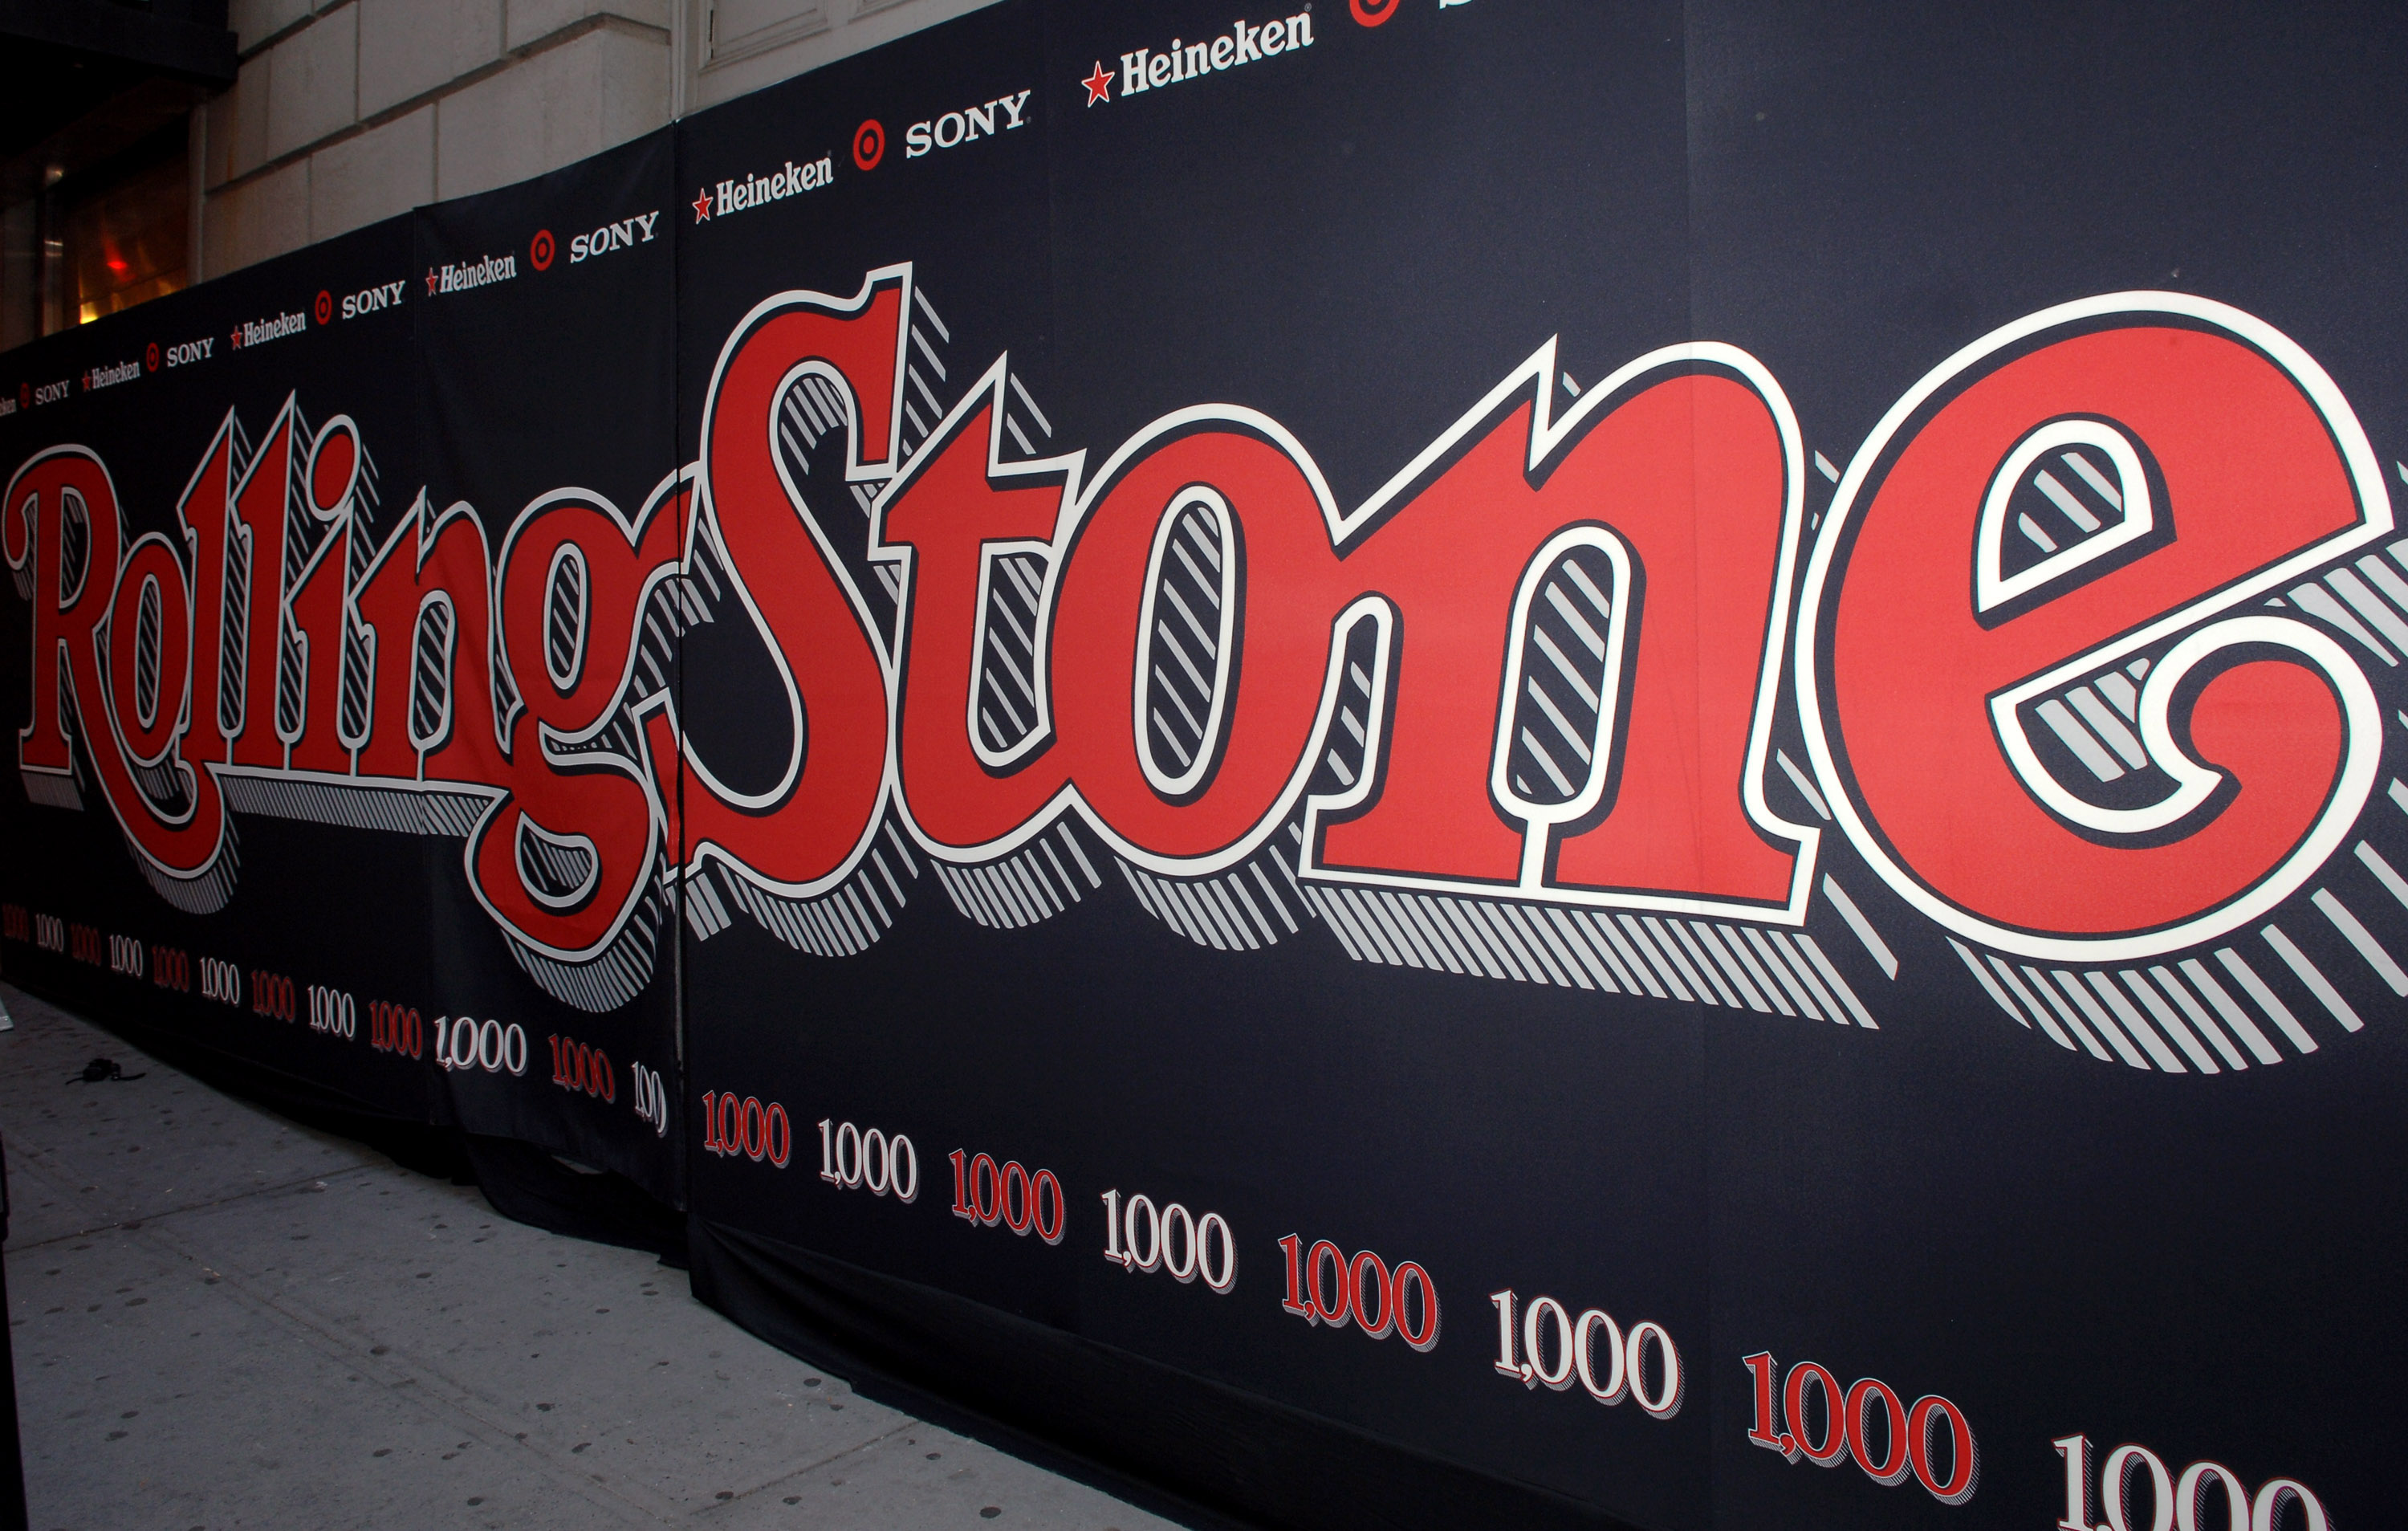 Rolling Stone Magazine Celebrates their 1,000th Issue